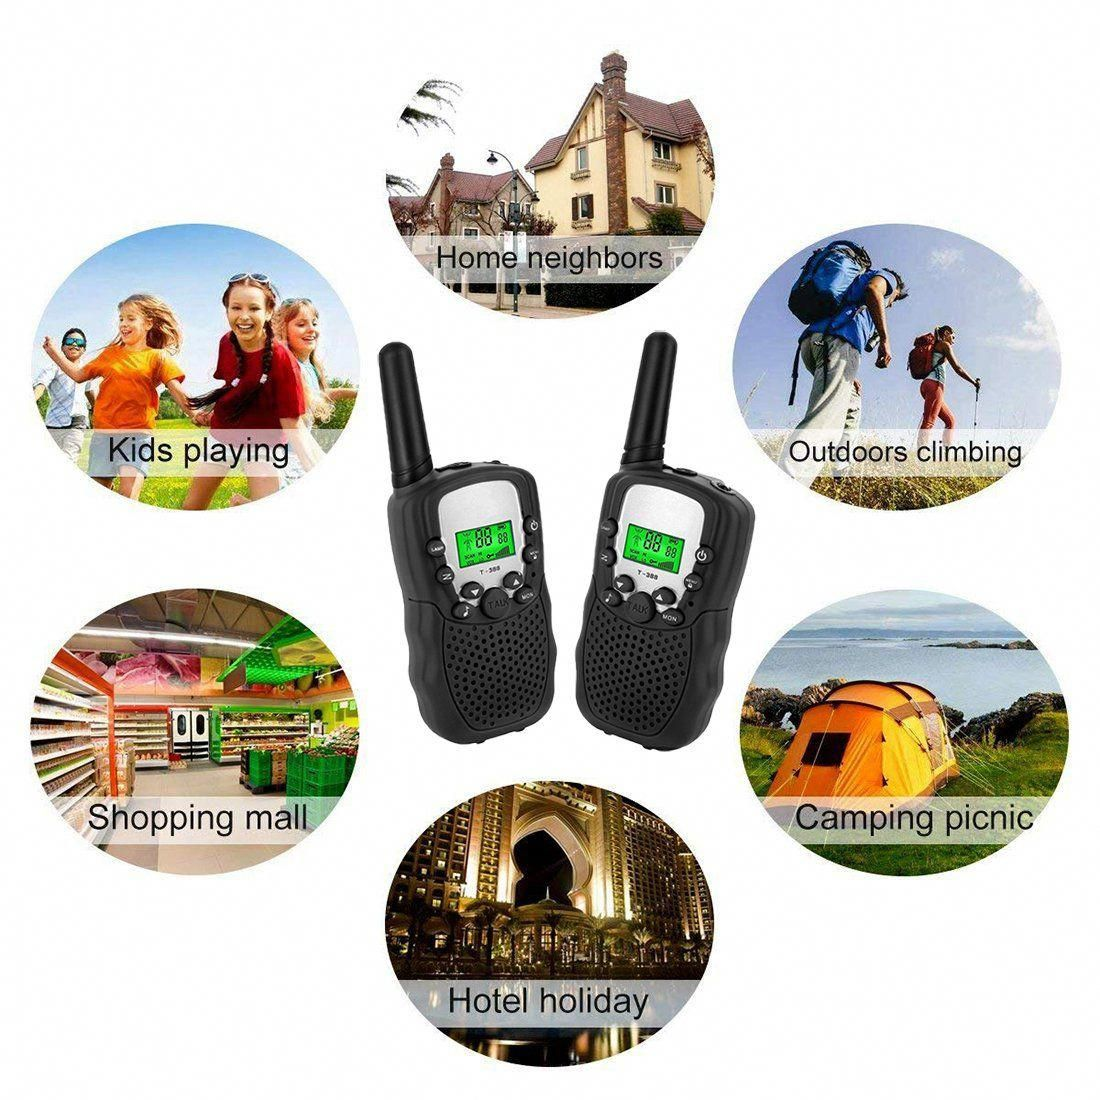 11a71b9edb4 Toys for 3-12 Year Old Boys JoyJam Kids Walkie Talkies 2 Miles Long Range  Kids Outdoor Games Christmas Birthday Gifts for 5-8 Year Old Boys Black - 1  Pair ...